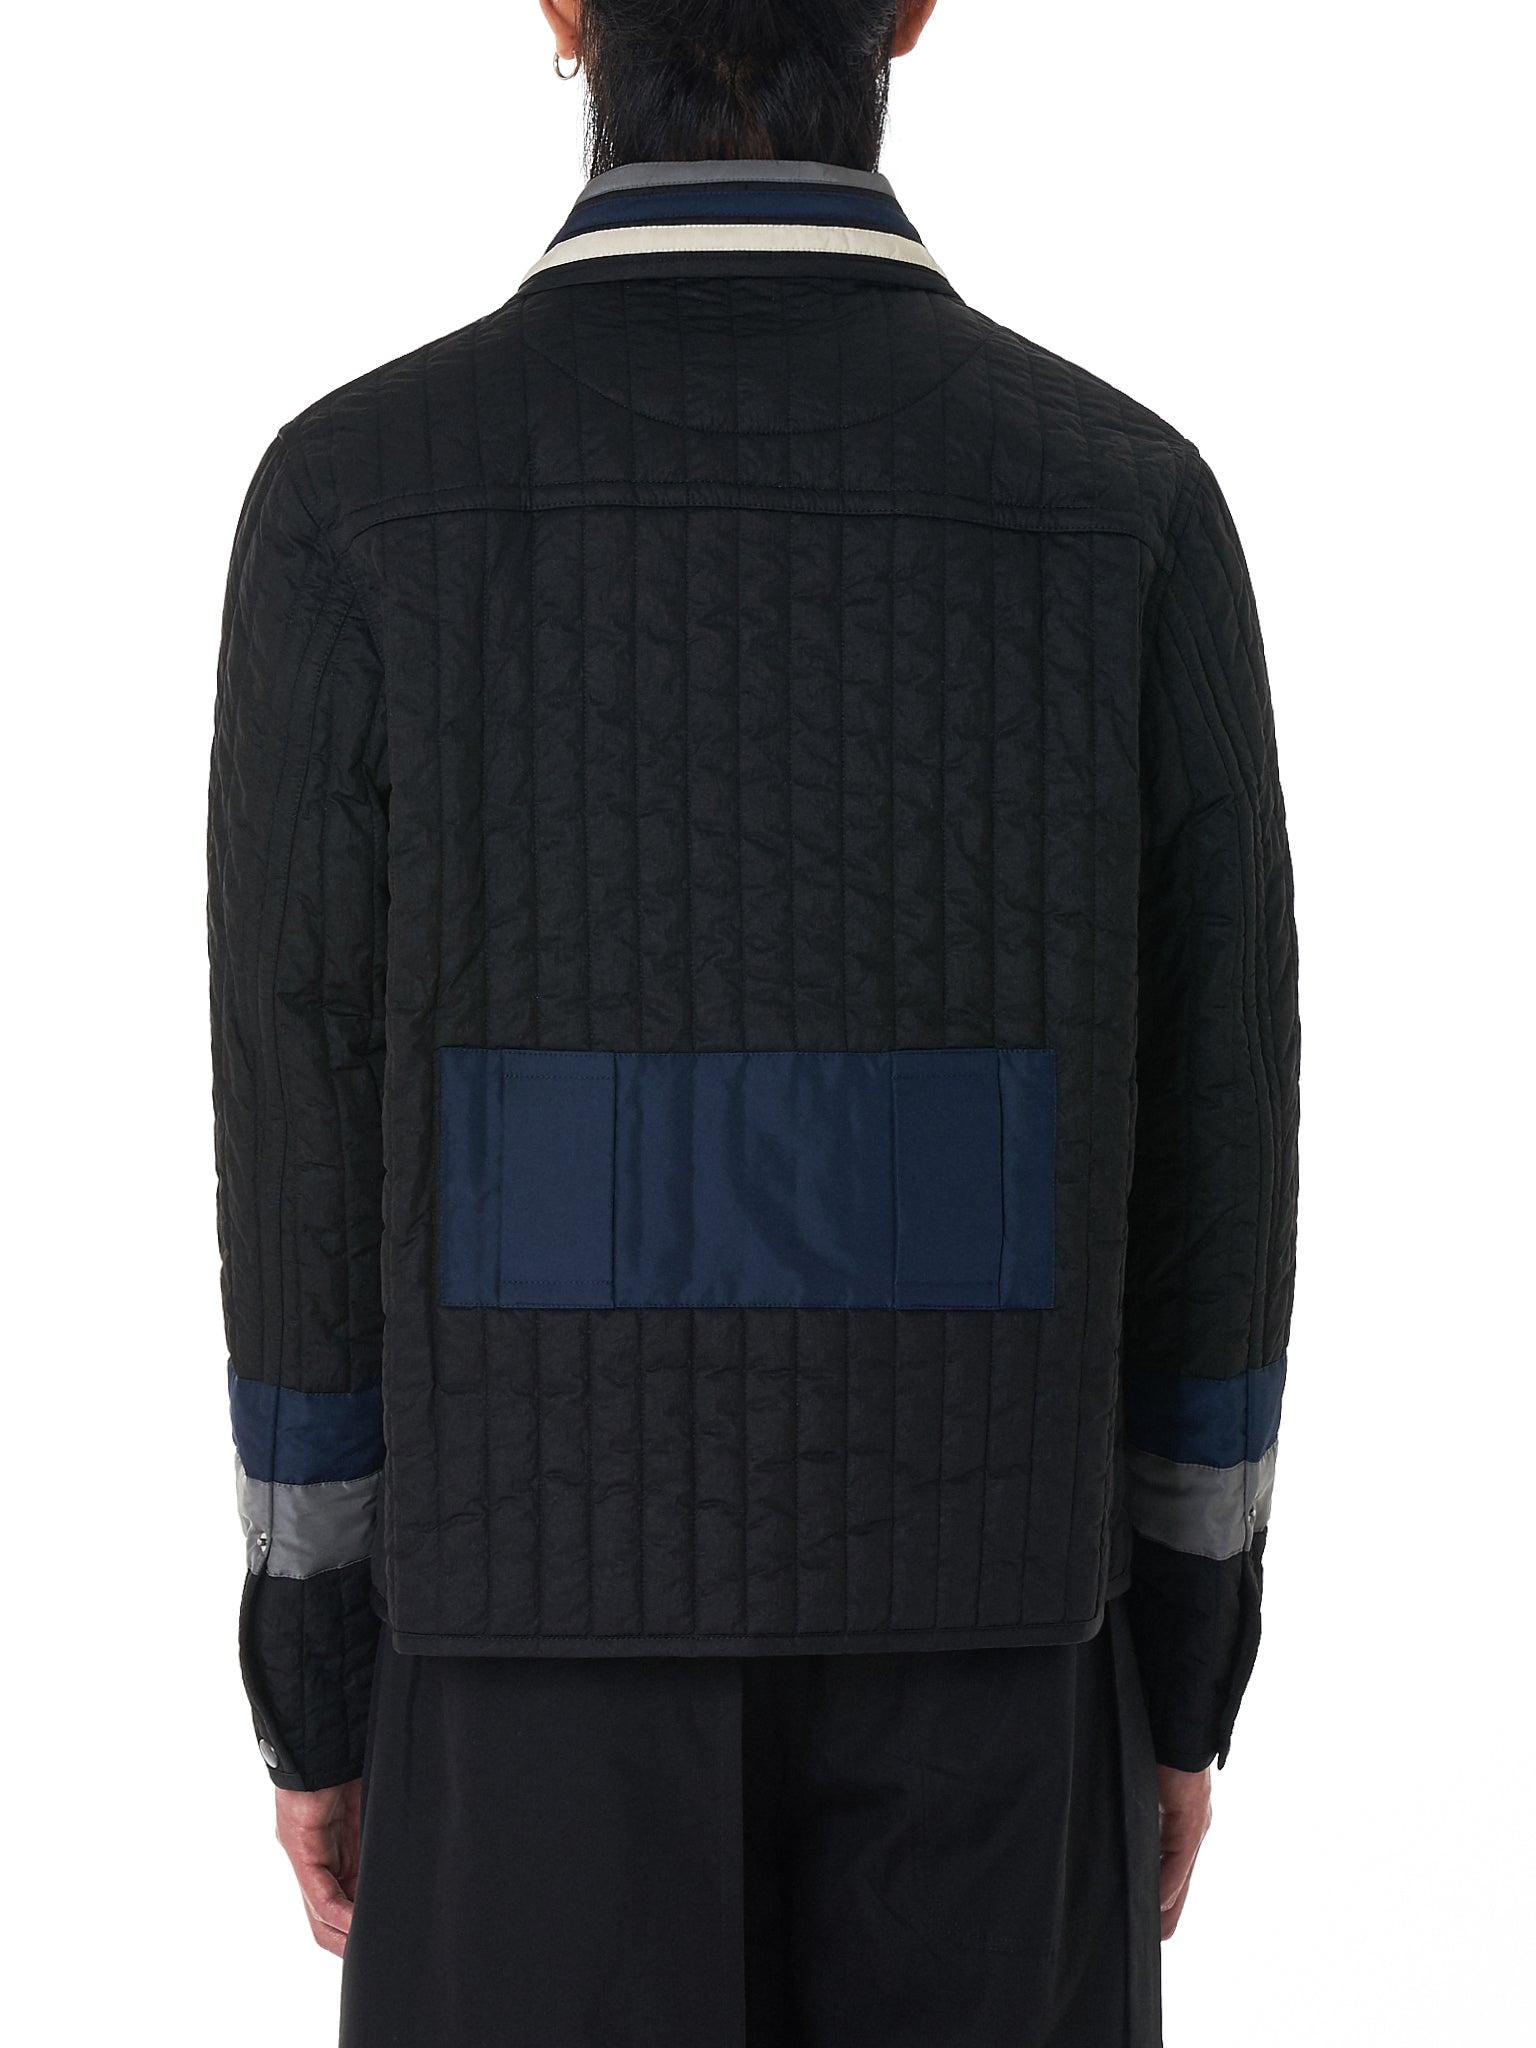 Craig Green Work Jacket - Hlorenzo Back